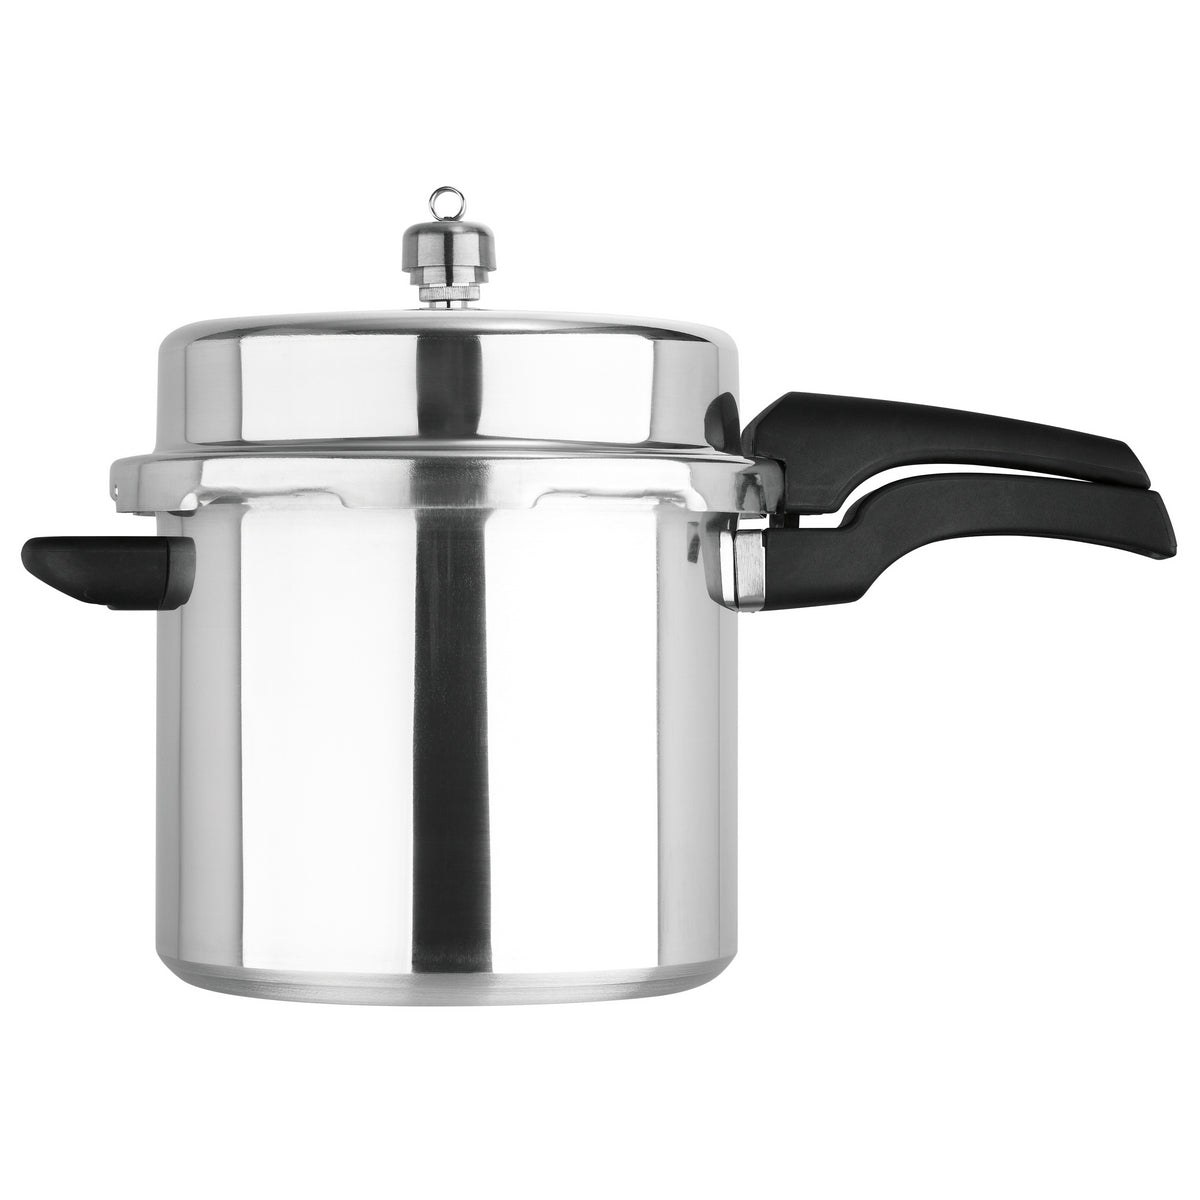 An image of High Dome Iconic Aluminium Pressure Cooker 6L